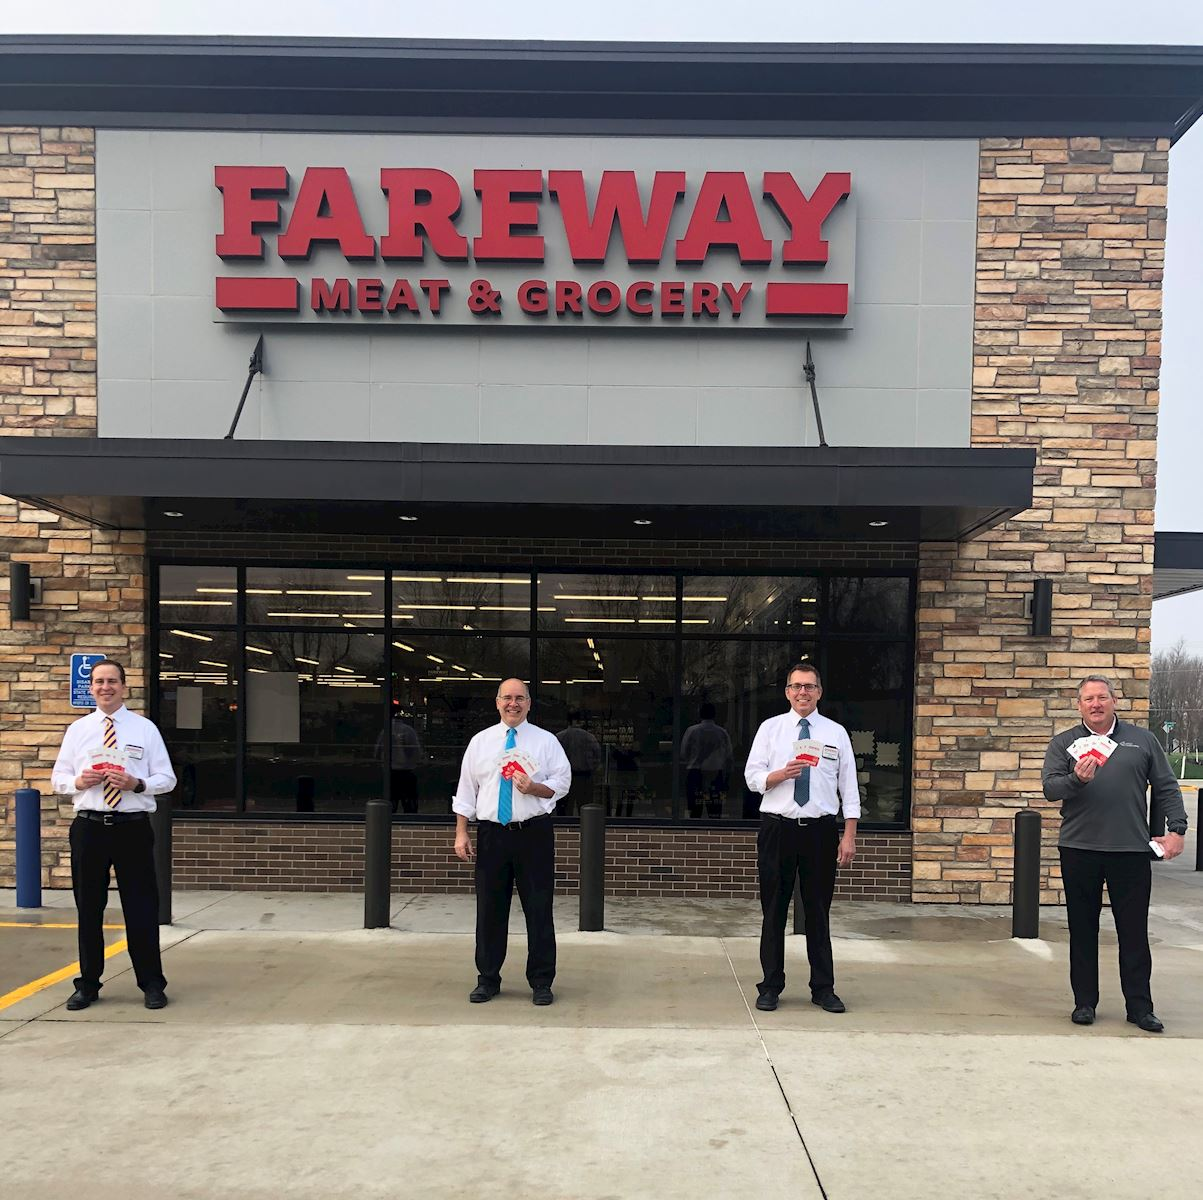 Fareway Donates More Than $200,000 to Support Small Businesses and Their Employees